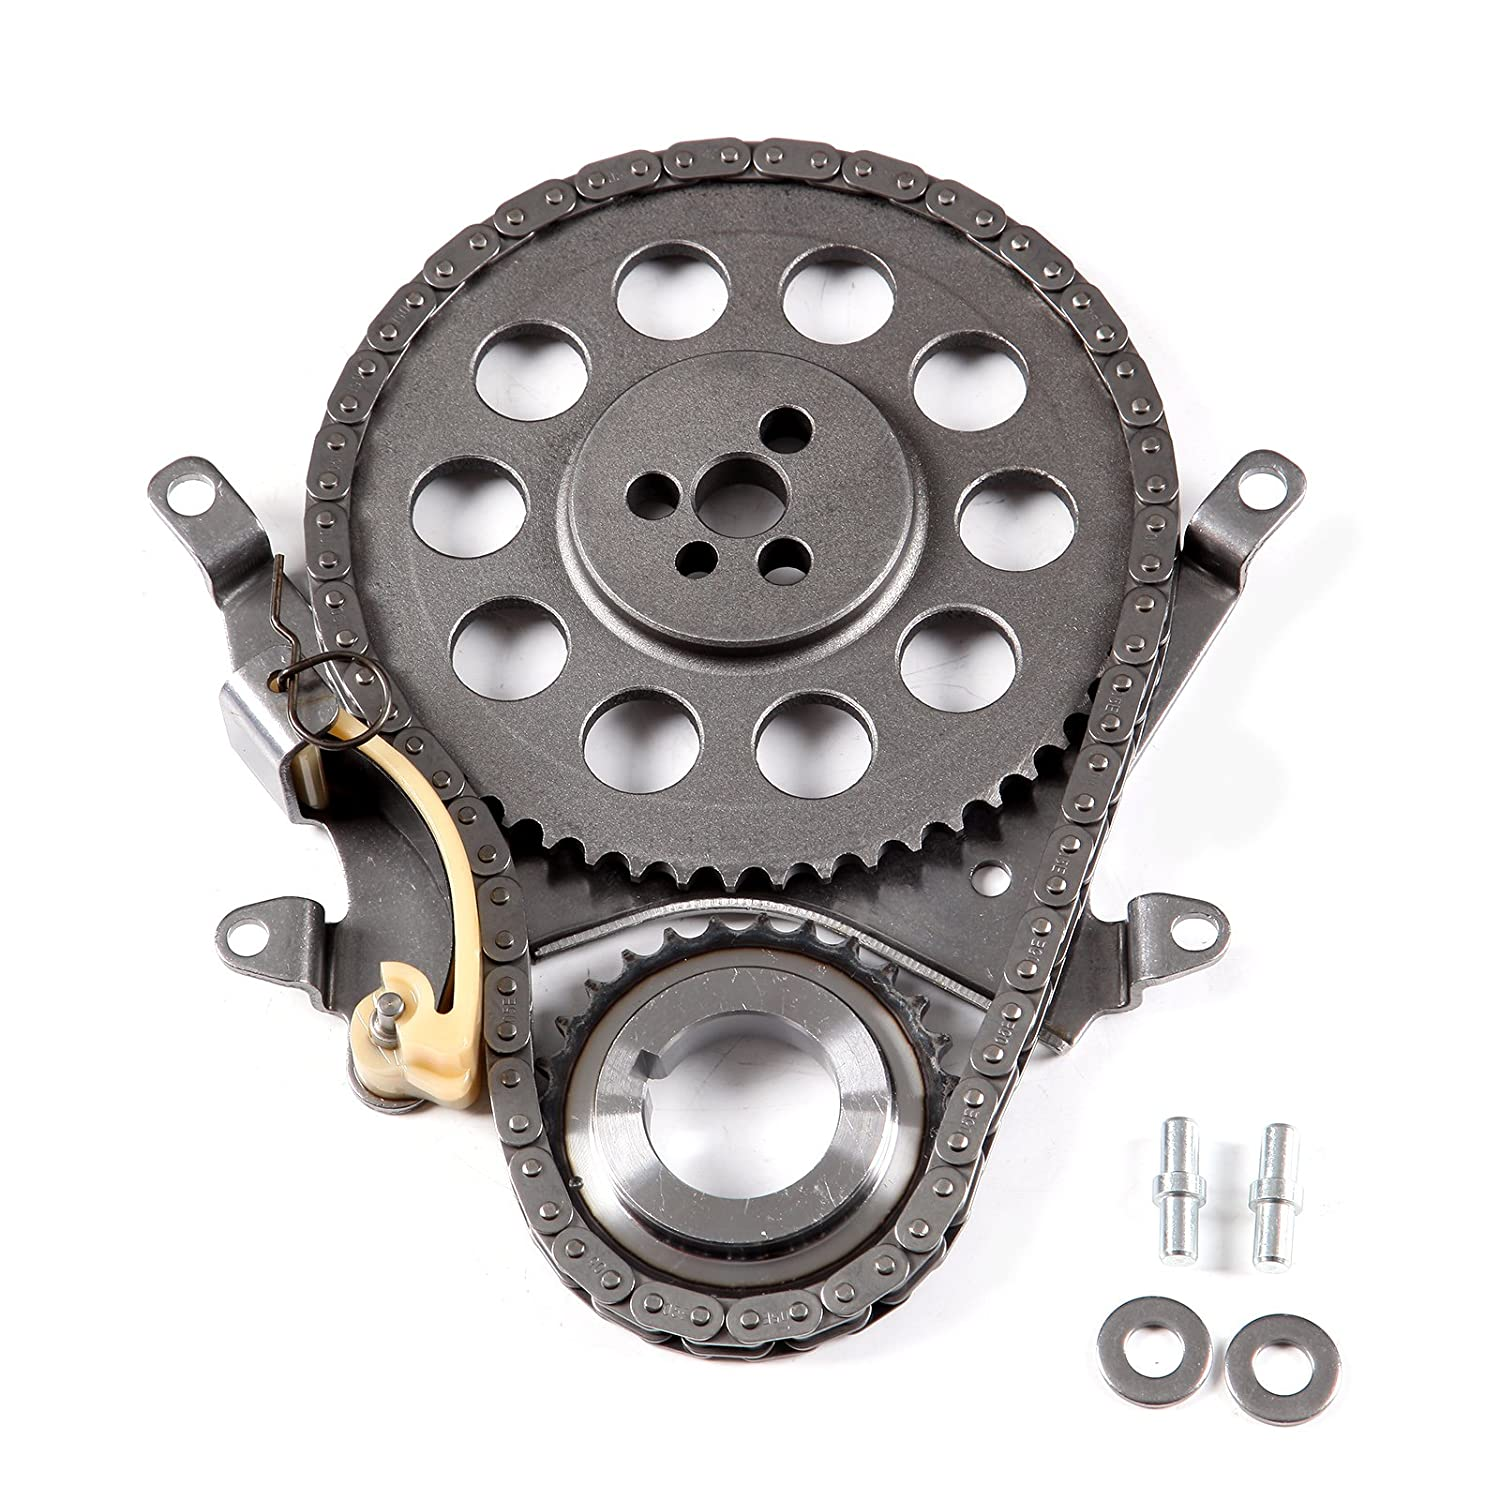 SCITOO TK3129 Timing Chain Kit Timing Rail Timing TENSIONER Crank Sprocket Cam Sprocket Compatible 99-07 GMC Safari Savana Chevrolet Silverado S10 4.3L OHV 053950-5206-1504471